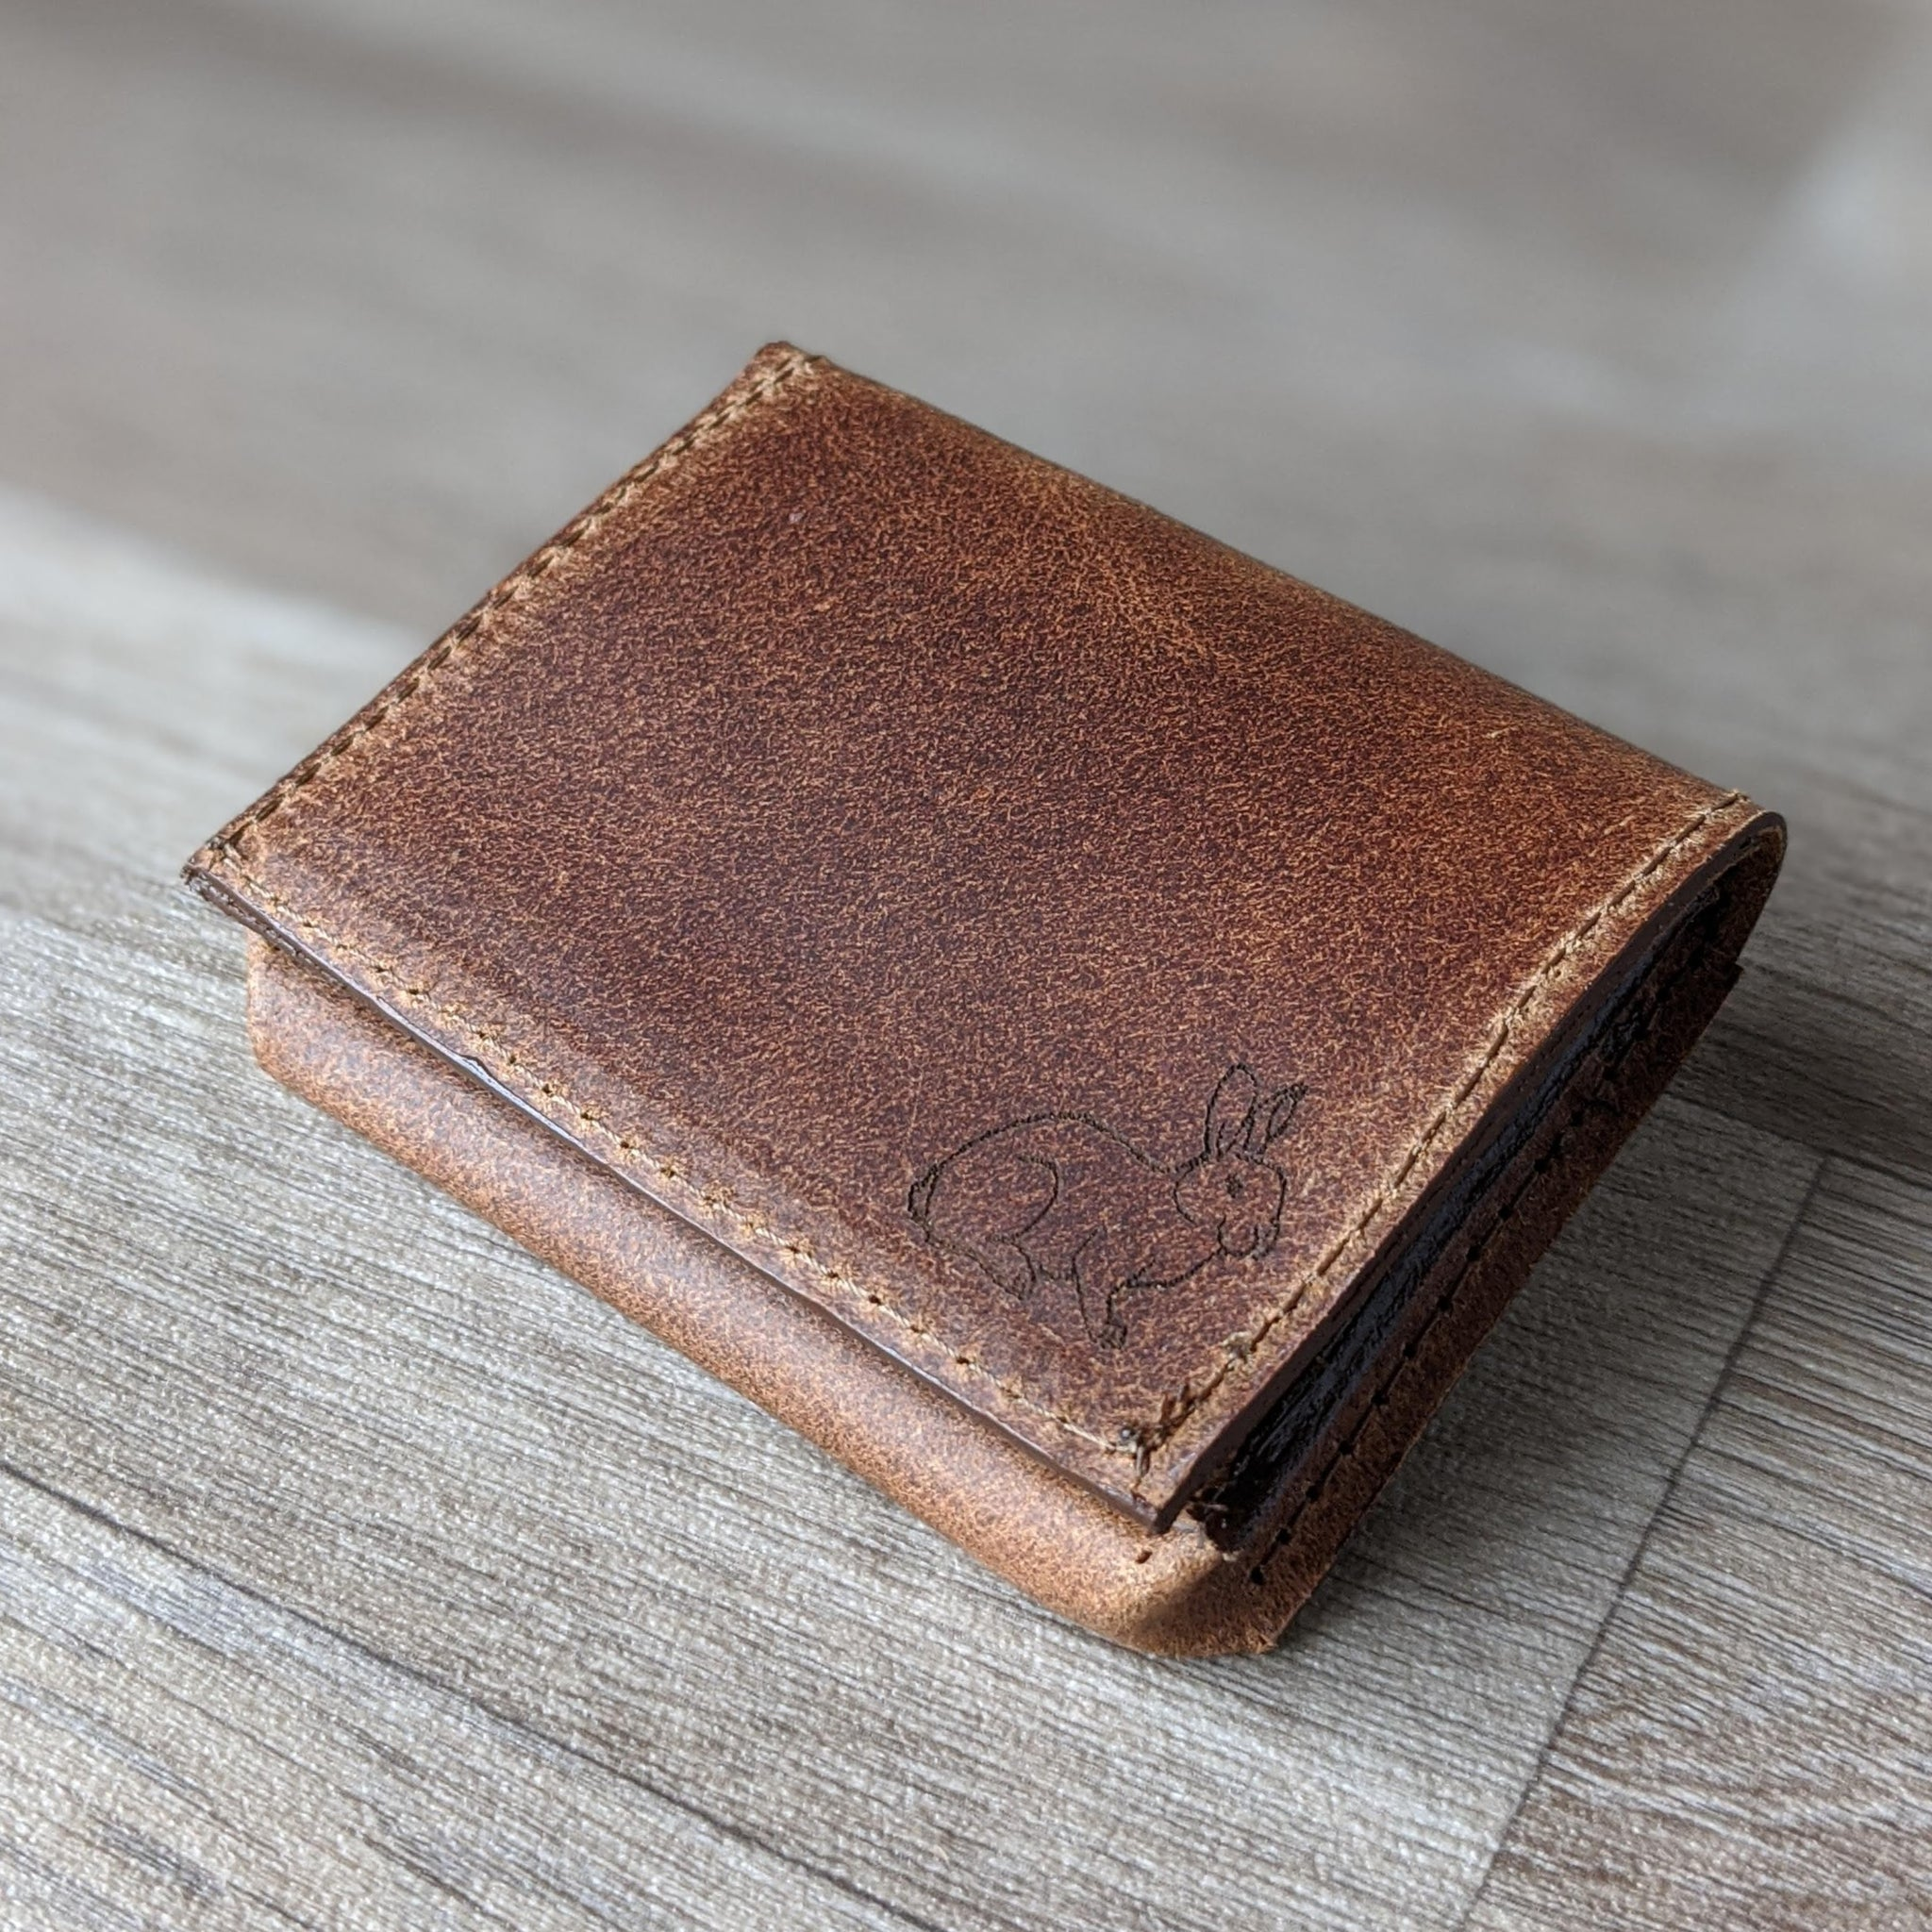 Rabbit Card Holder - Tan Leather